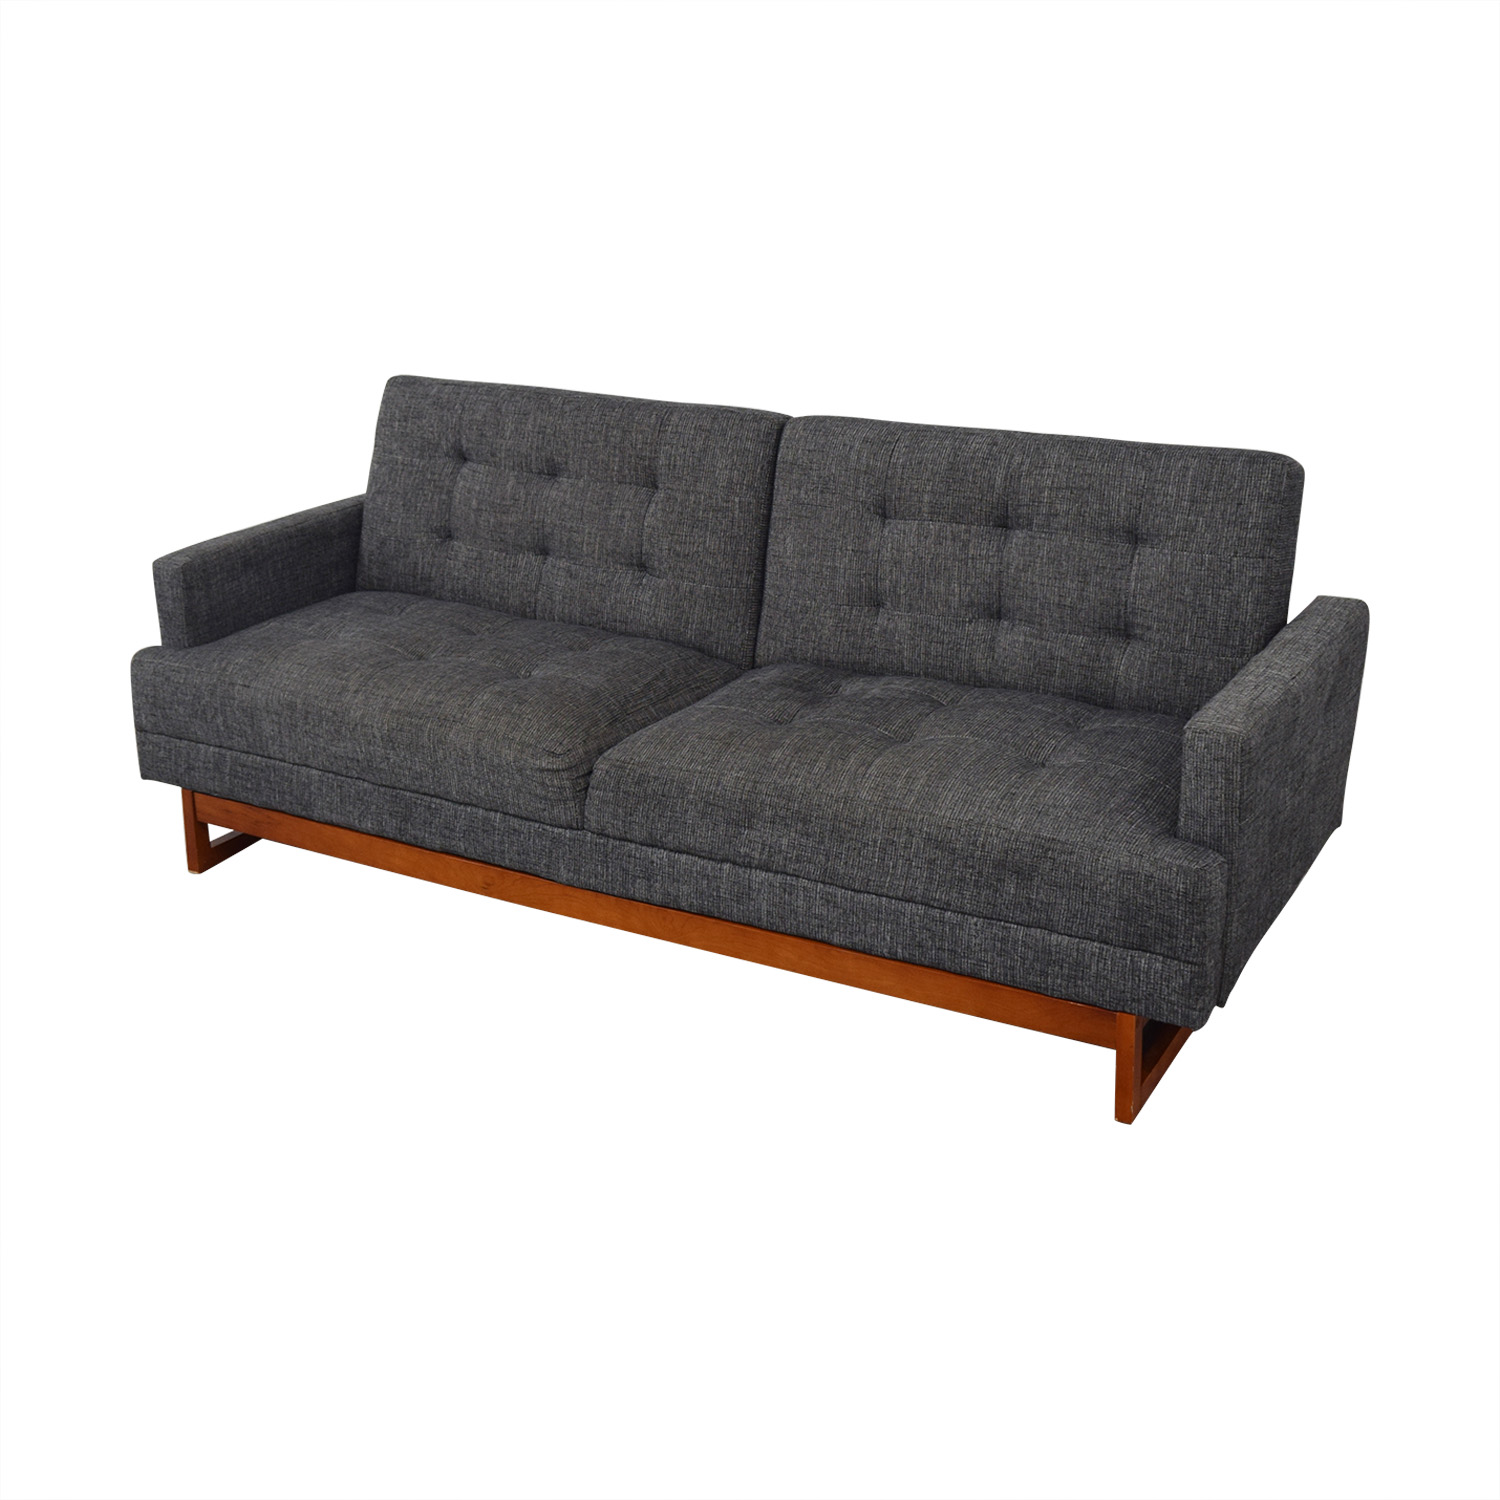 Buy Sofa Bed Online 60 Off Urban Outfitters Urban Outfitters Either Or Sofa Bed Sofas